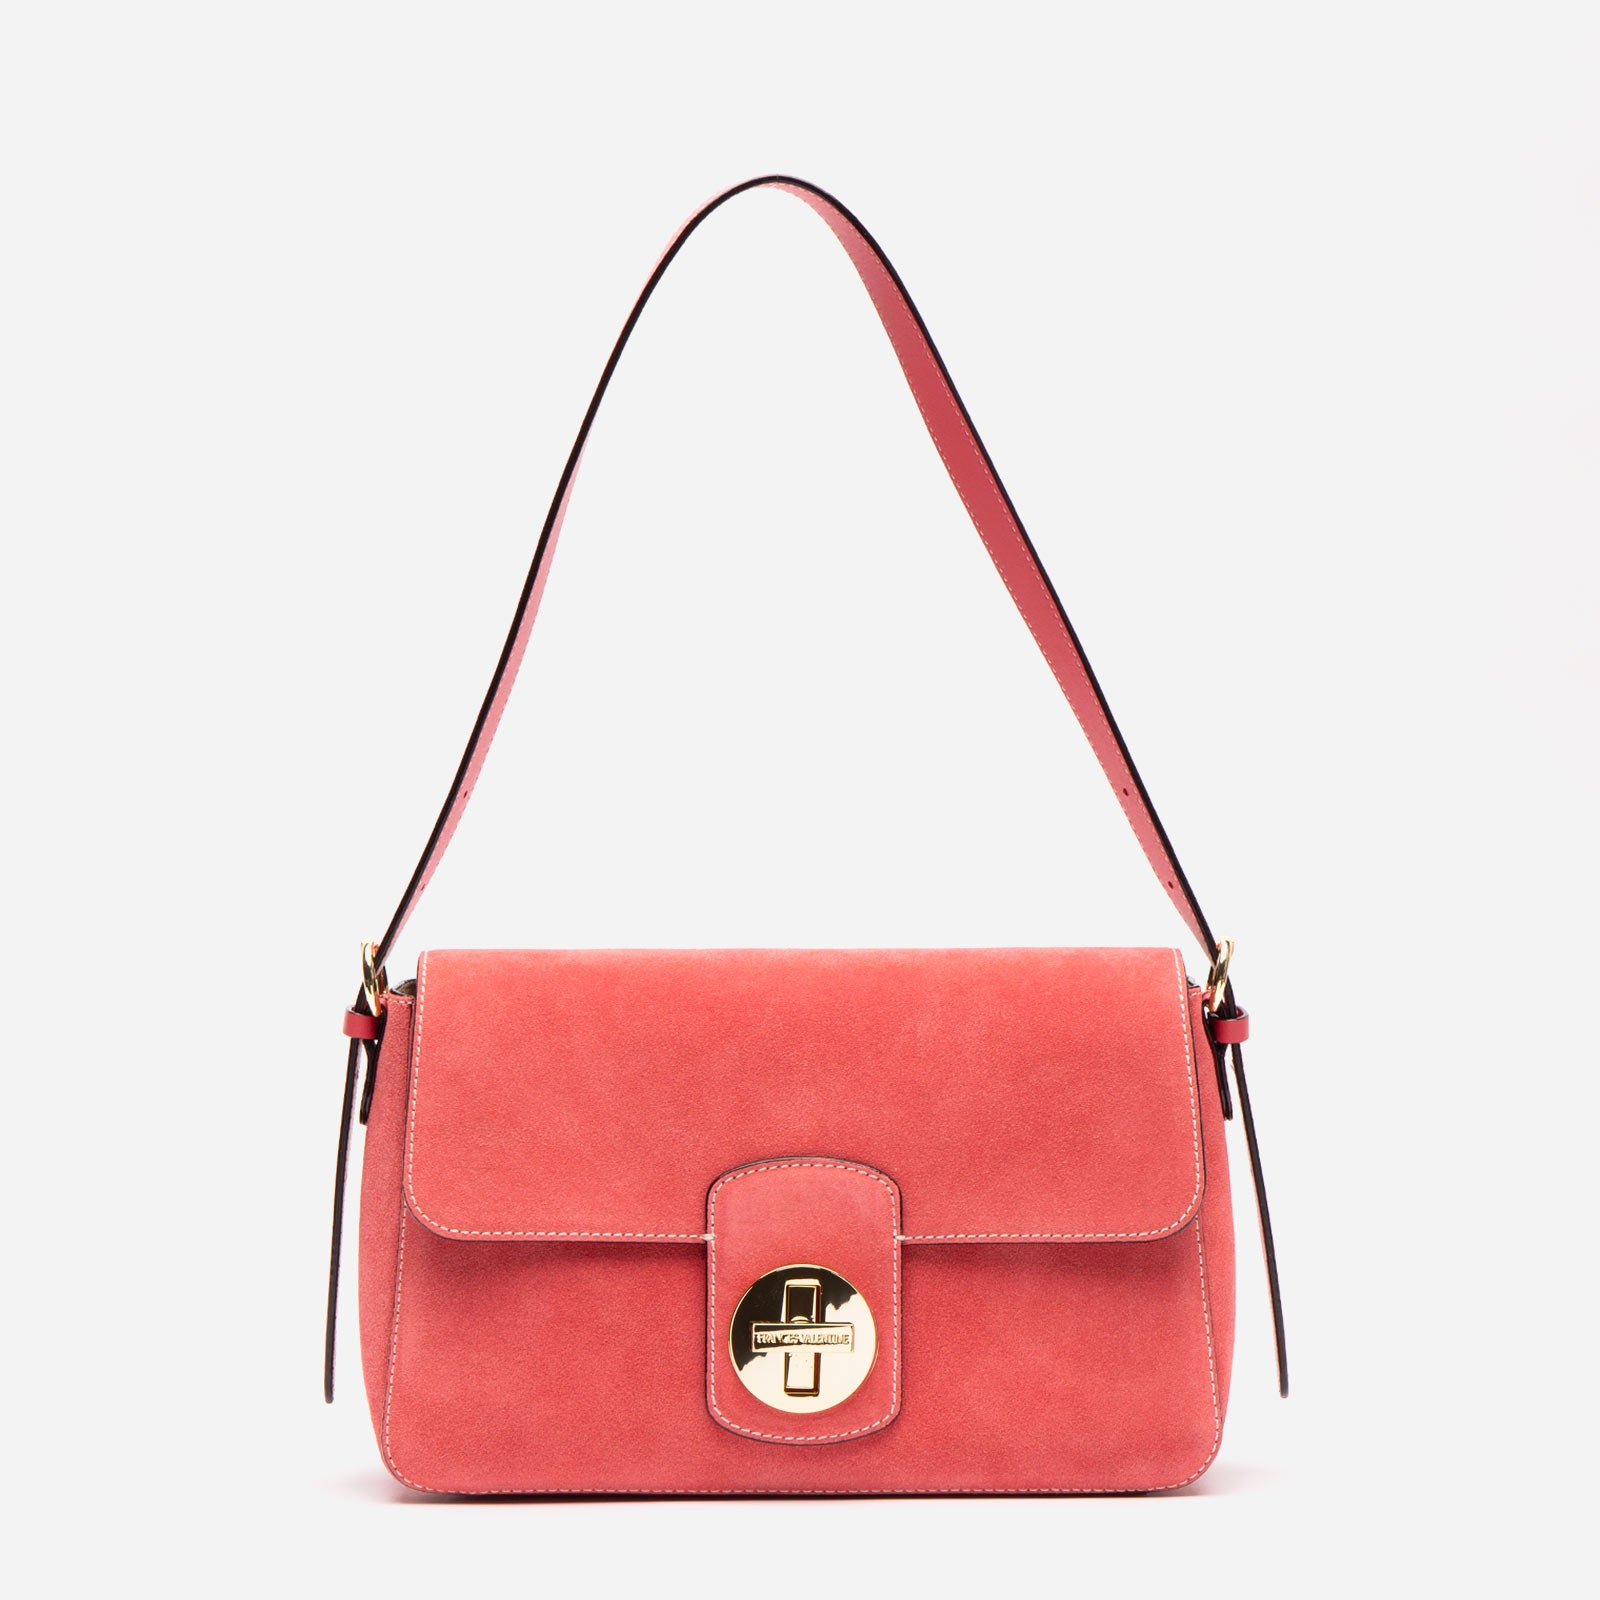 Ruby Shoulder Bag Suede Cerise - Frances Valentine